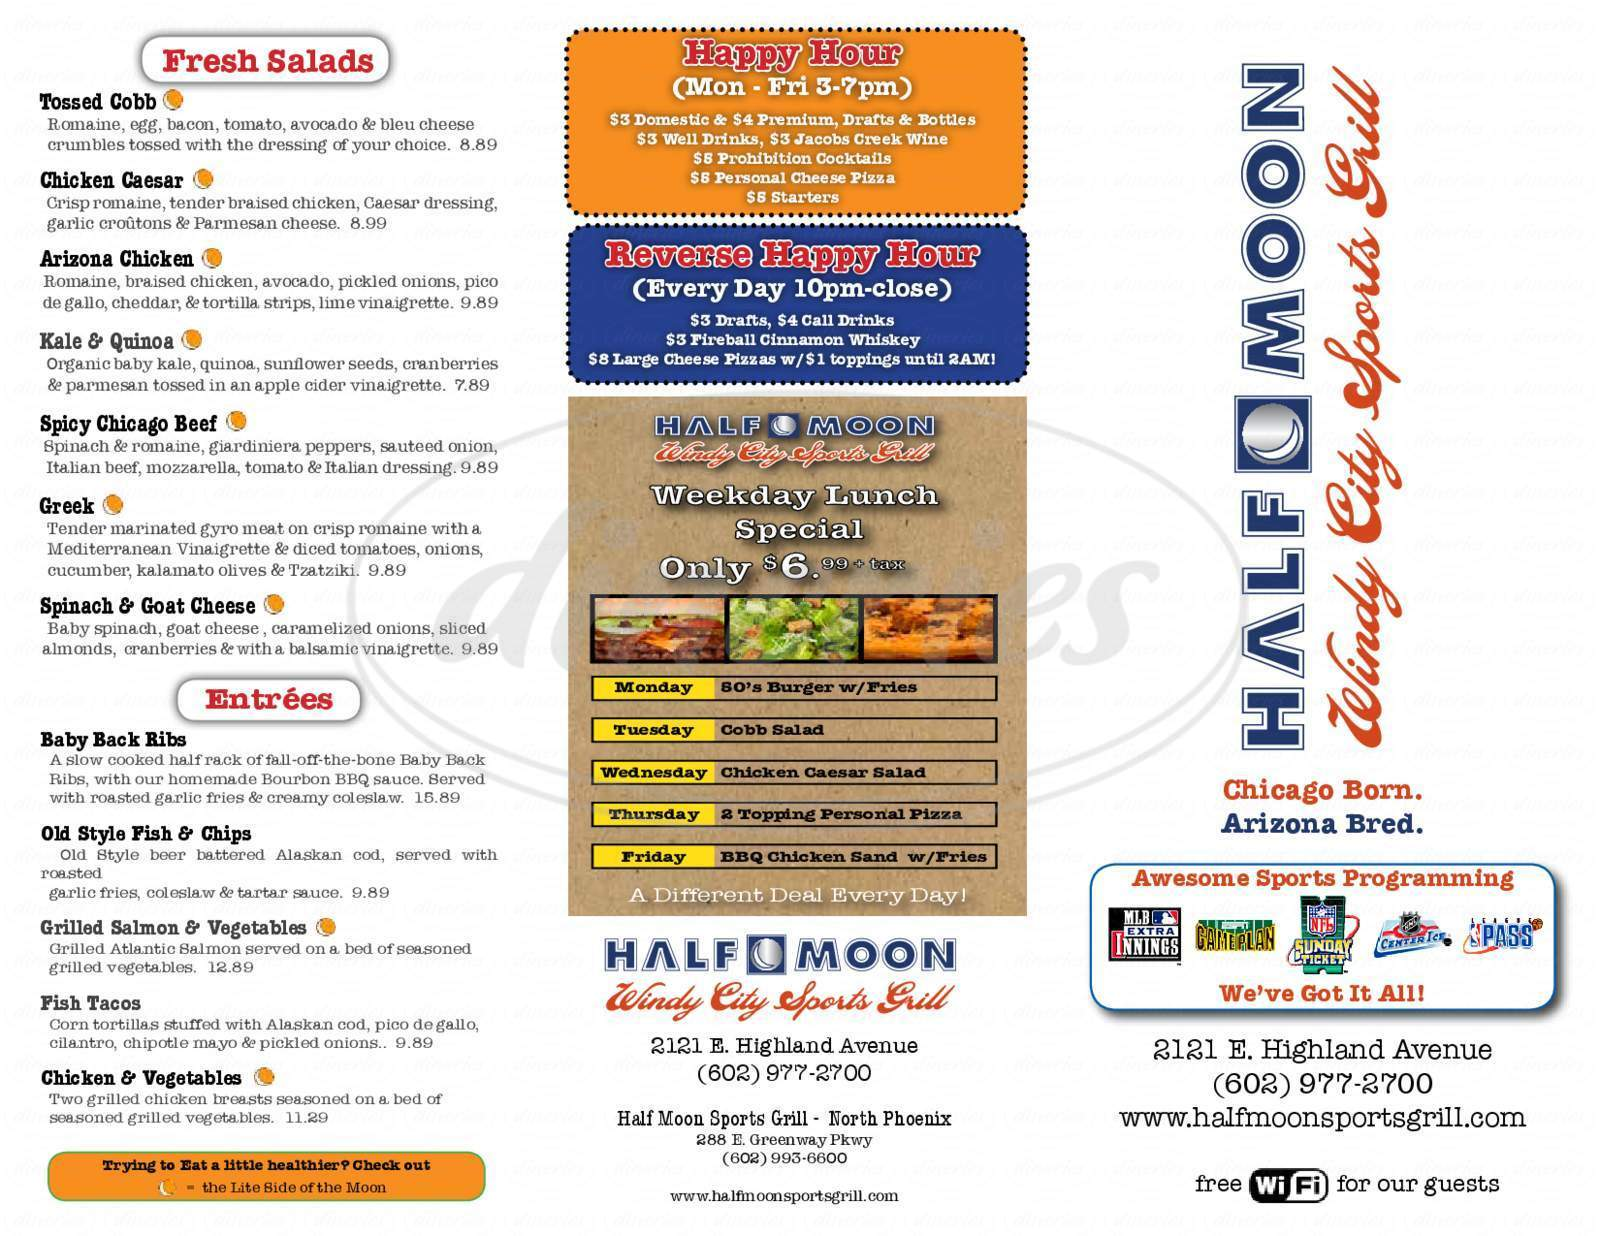 menu for Half Moon Sports Grill